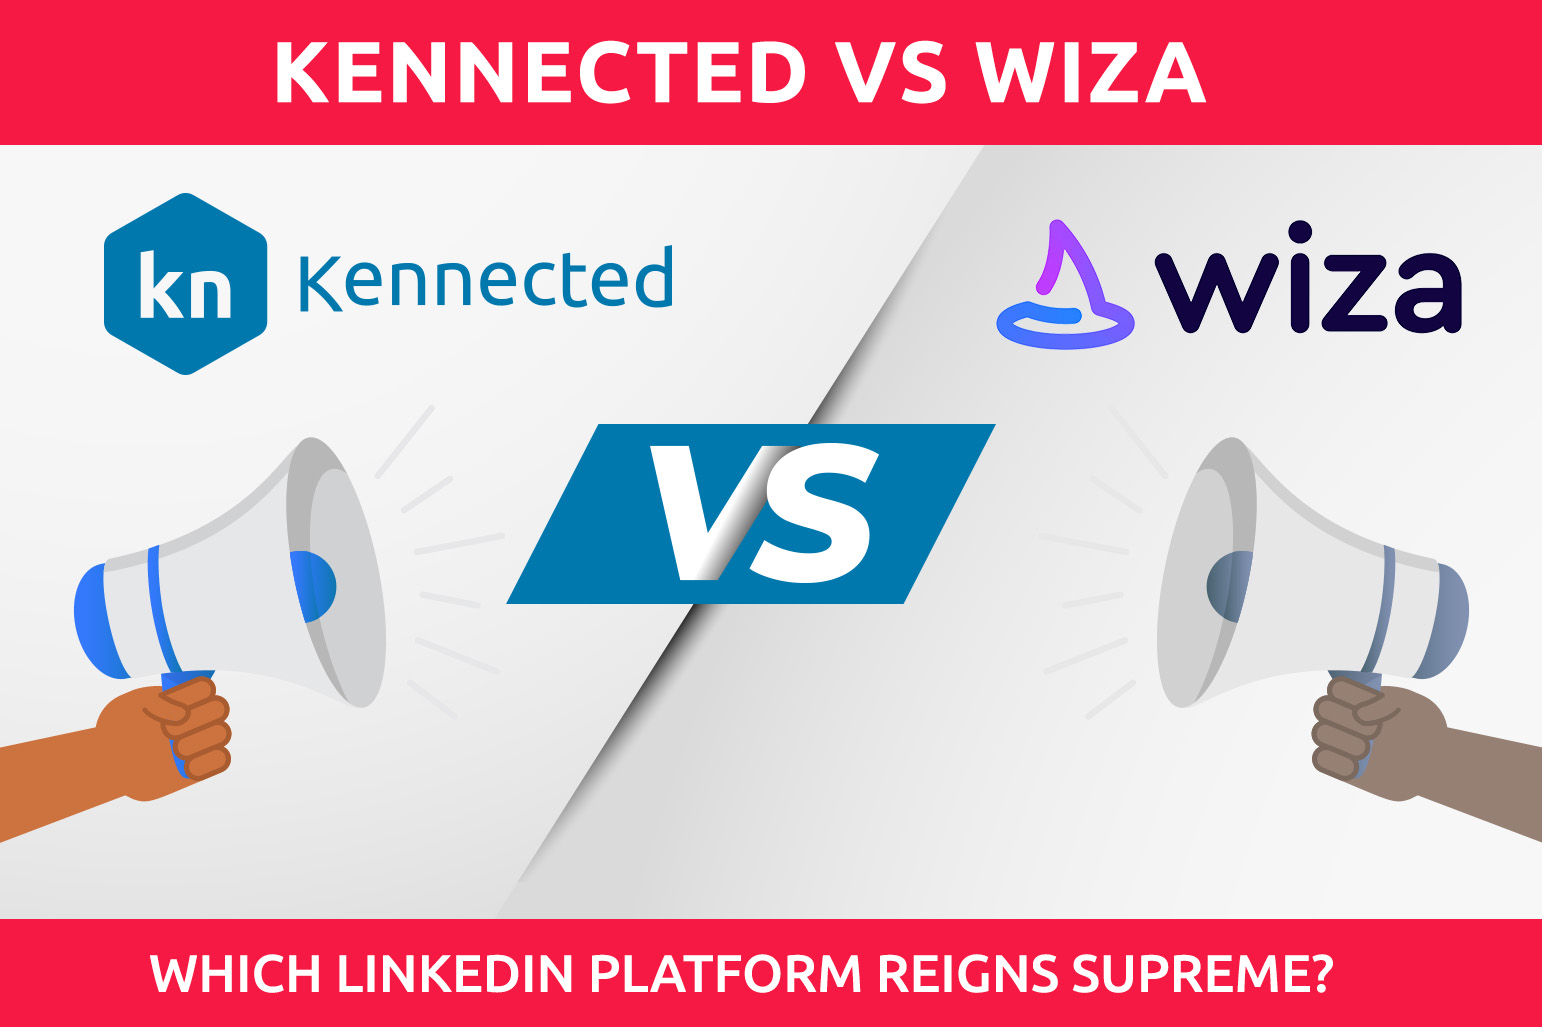 Wiza vs. Kennected | Which LinkedIn Platform Reigns Supreme?